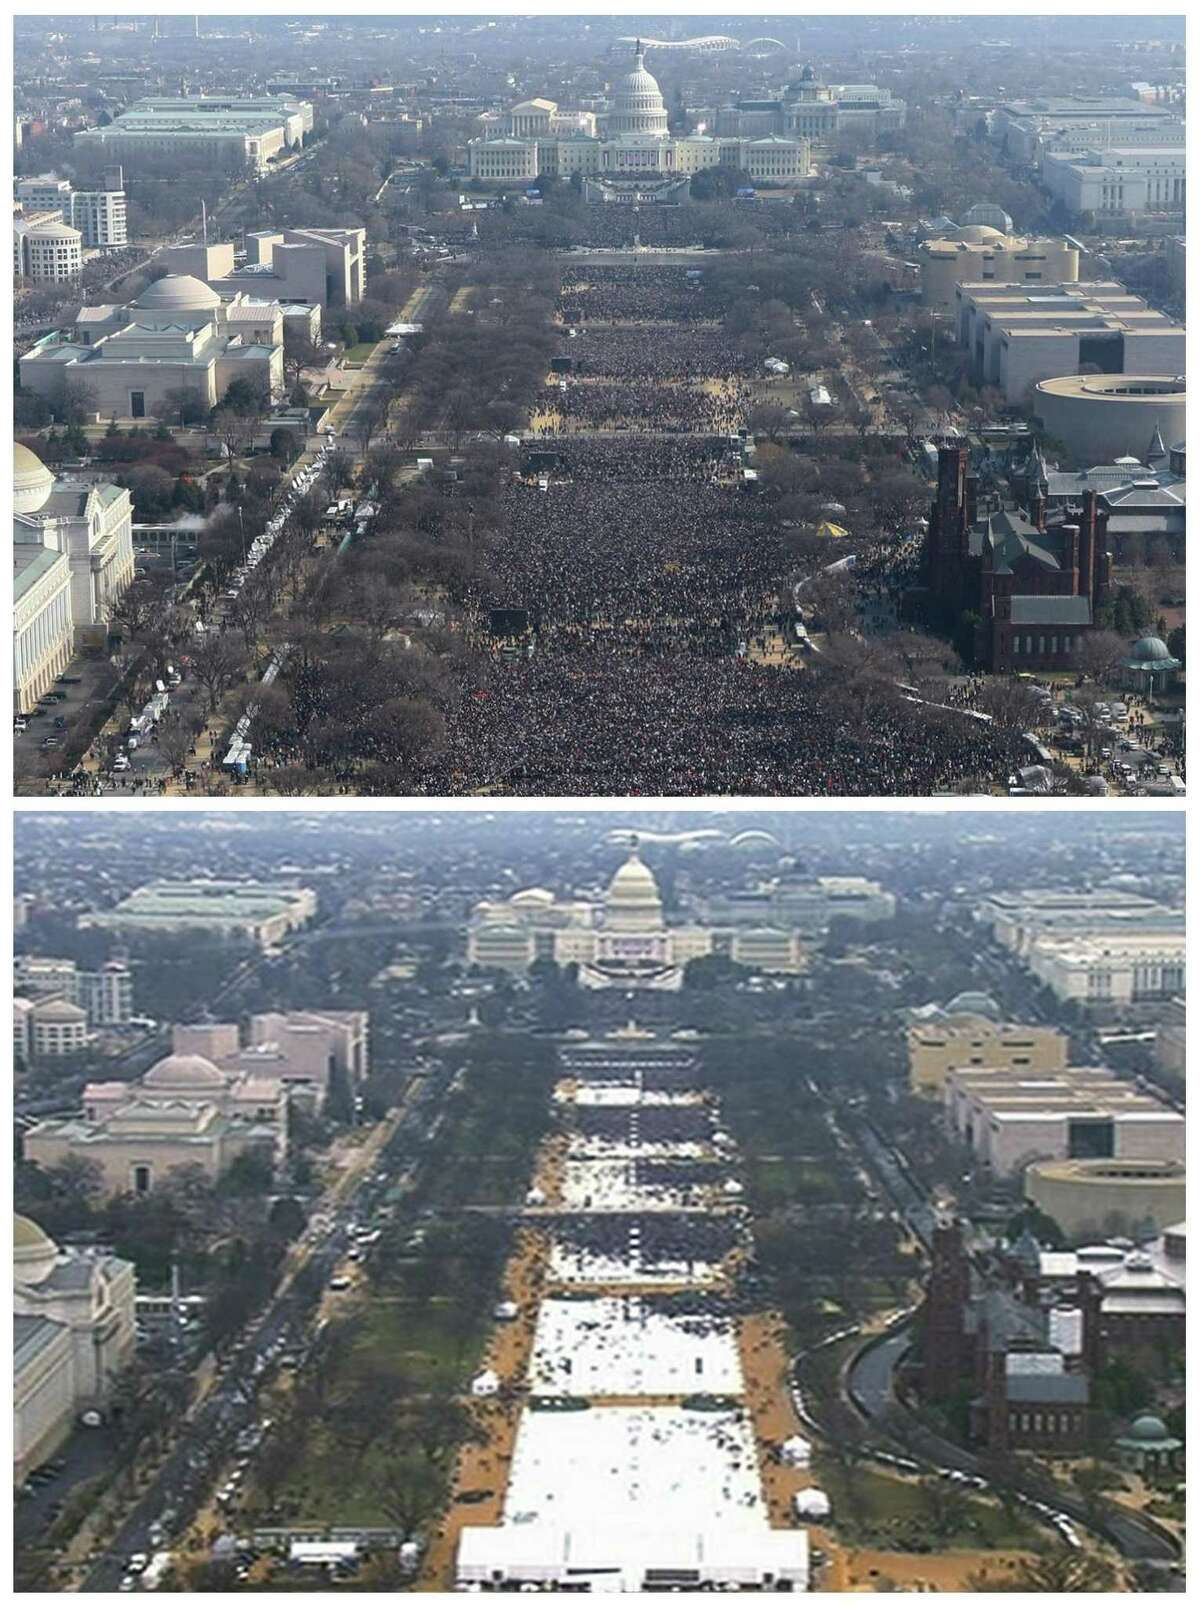 Get your news directly from the president? He claimed his inaugural crowd was bigger than President Barack Obama's. You be the judge. This pair of photos shows a view of the crowd on the National Mall at the inaugurations of Obama, above, on Jan. 20, 2009, and President Donald Trump, below, on Jan. 20, 2017.